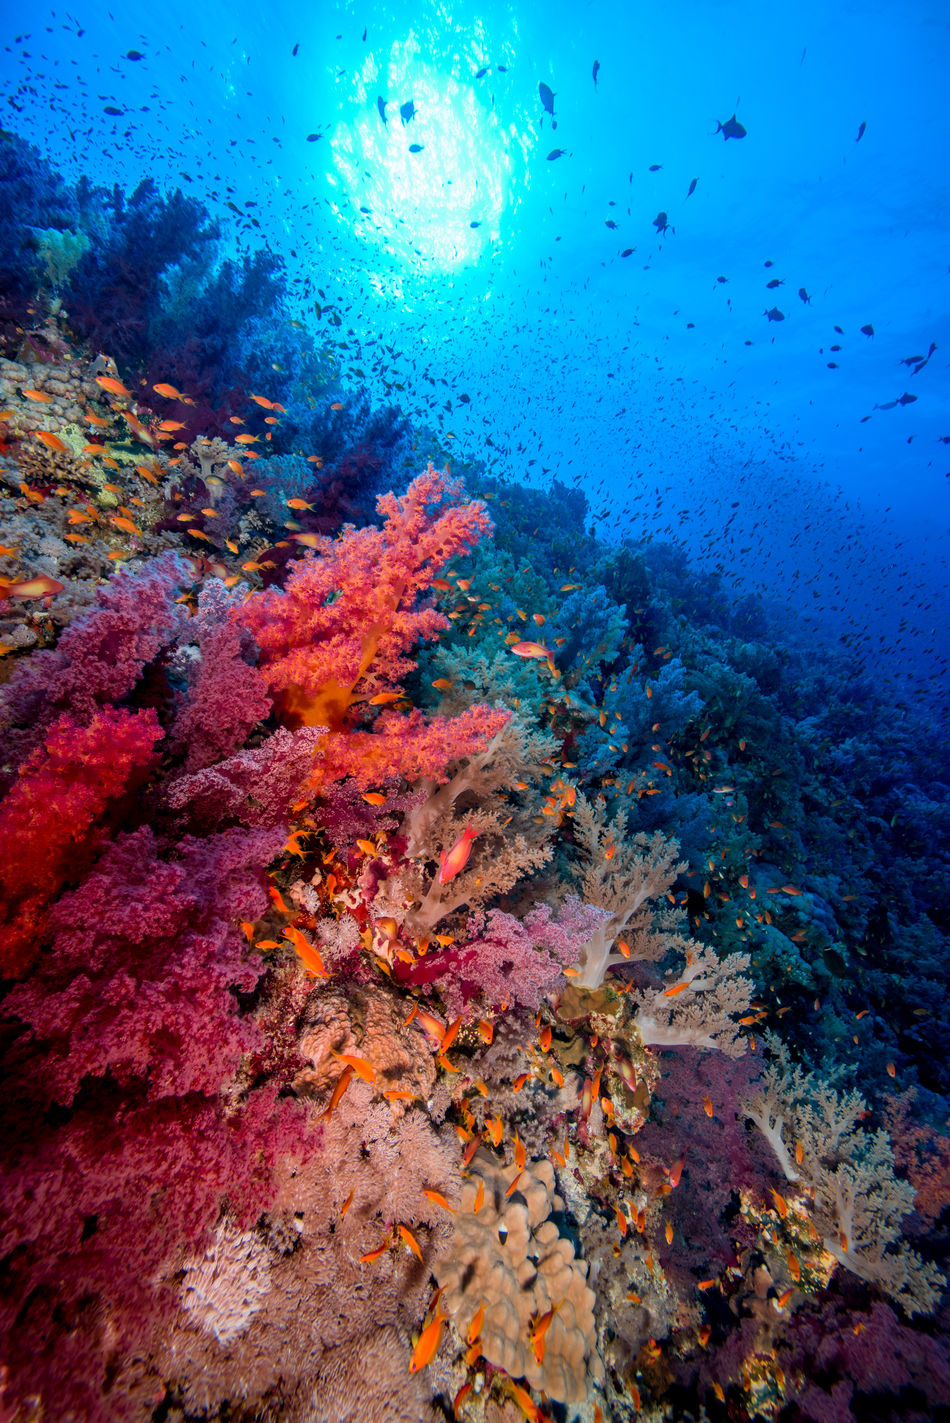 red sea Adventure Animals In The Wild Aquatic Sport Beatiful Nature Coral Escape Explorer Extreme Adventures Fish Large Group Of Animals Light And Shadow Multi Colored Nature No People Ocean RedSea Reef Scubadiving Sea Sea Life Solo Traveller Travel Photography UnderSea Underwater Unusual Beauty